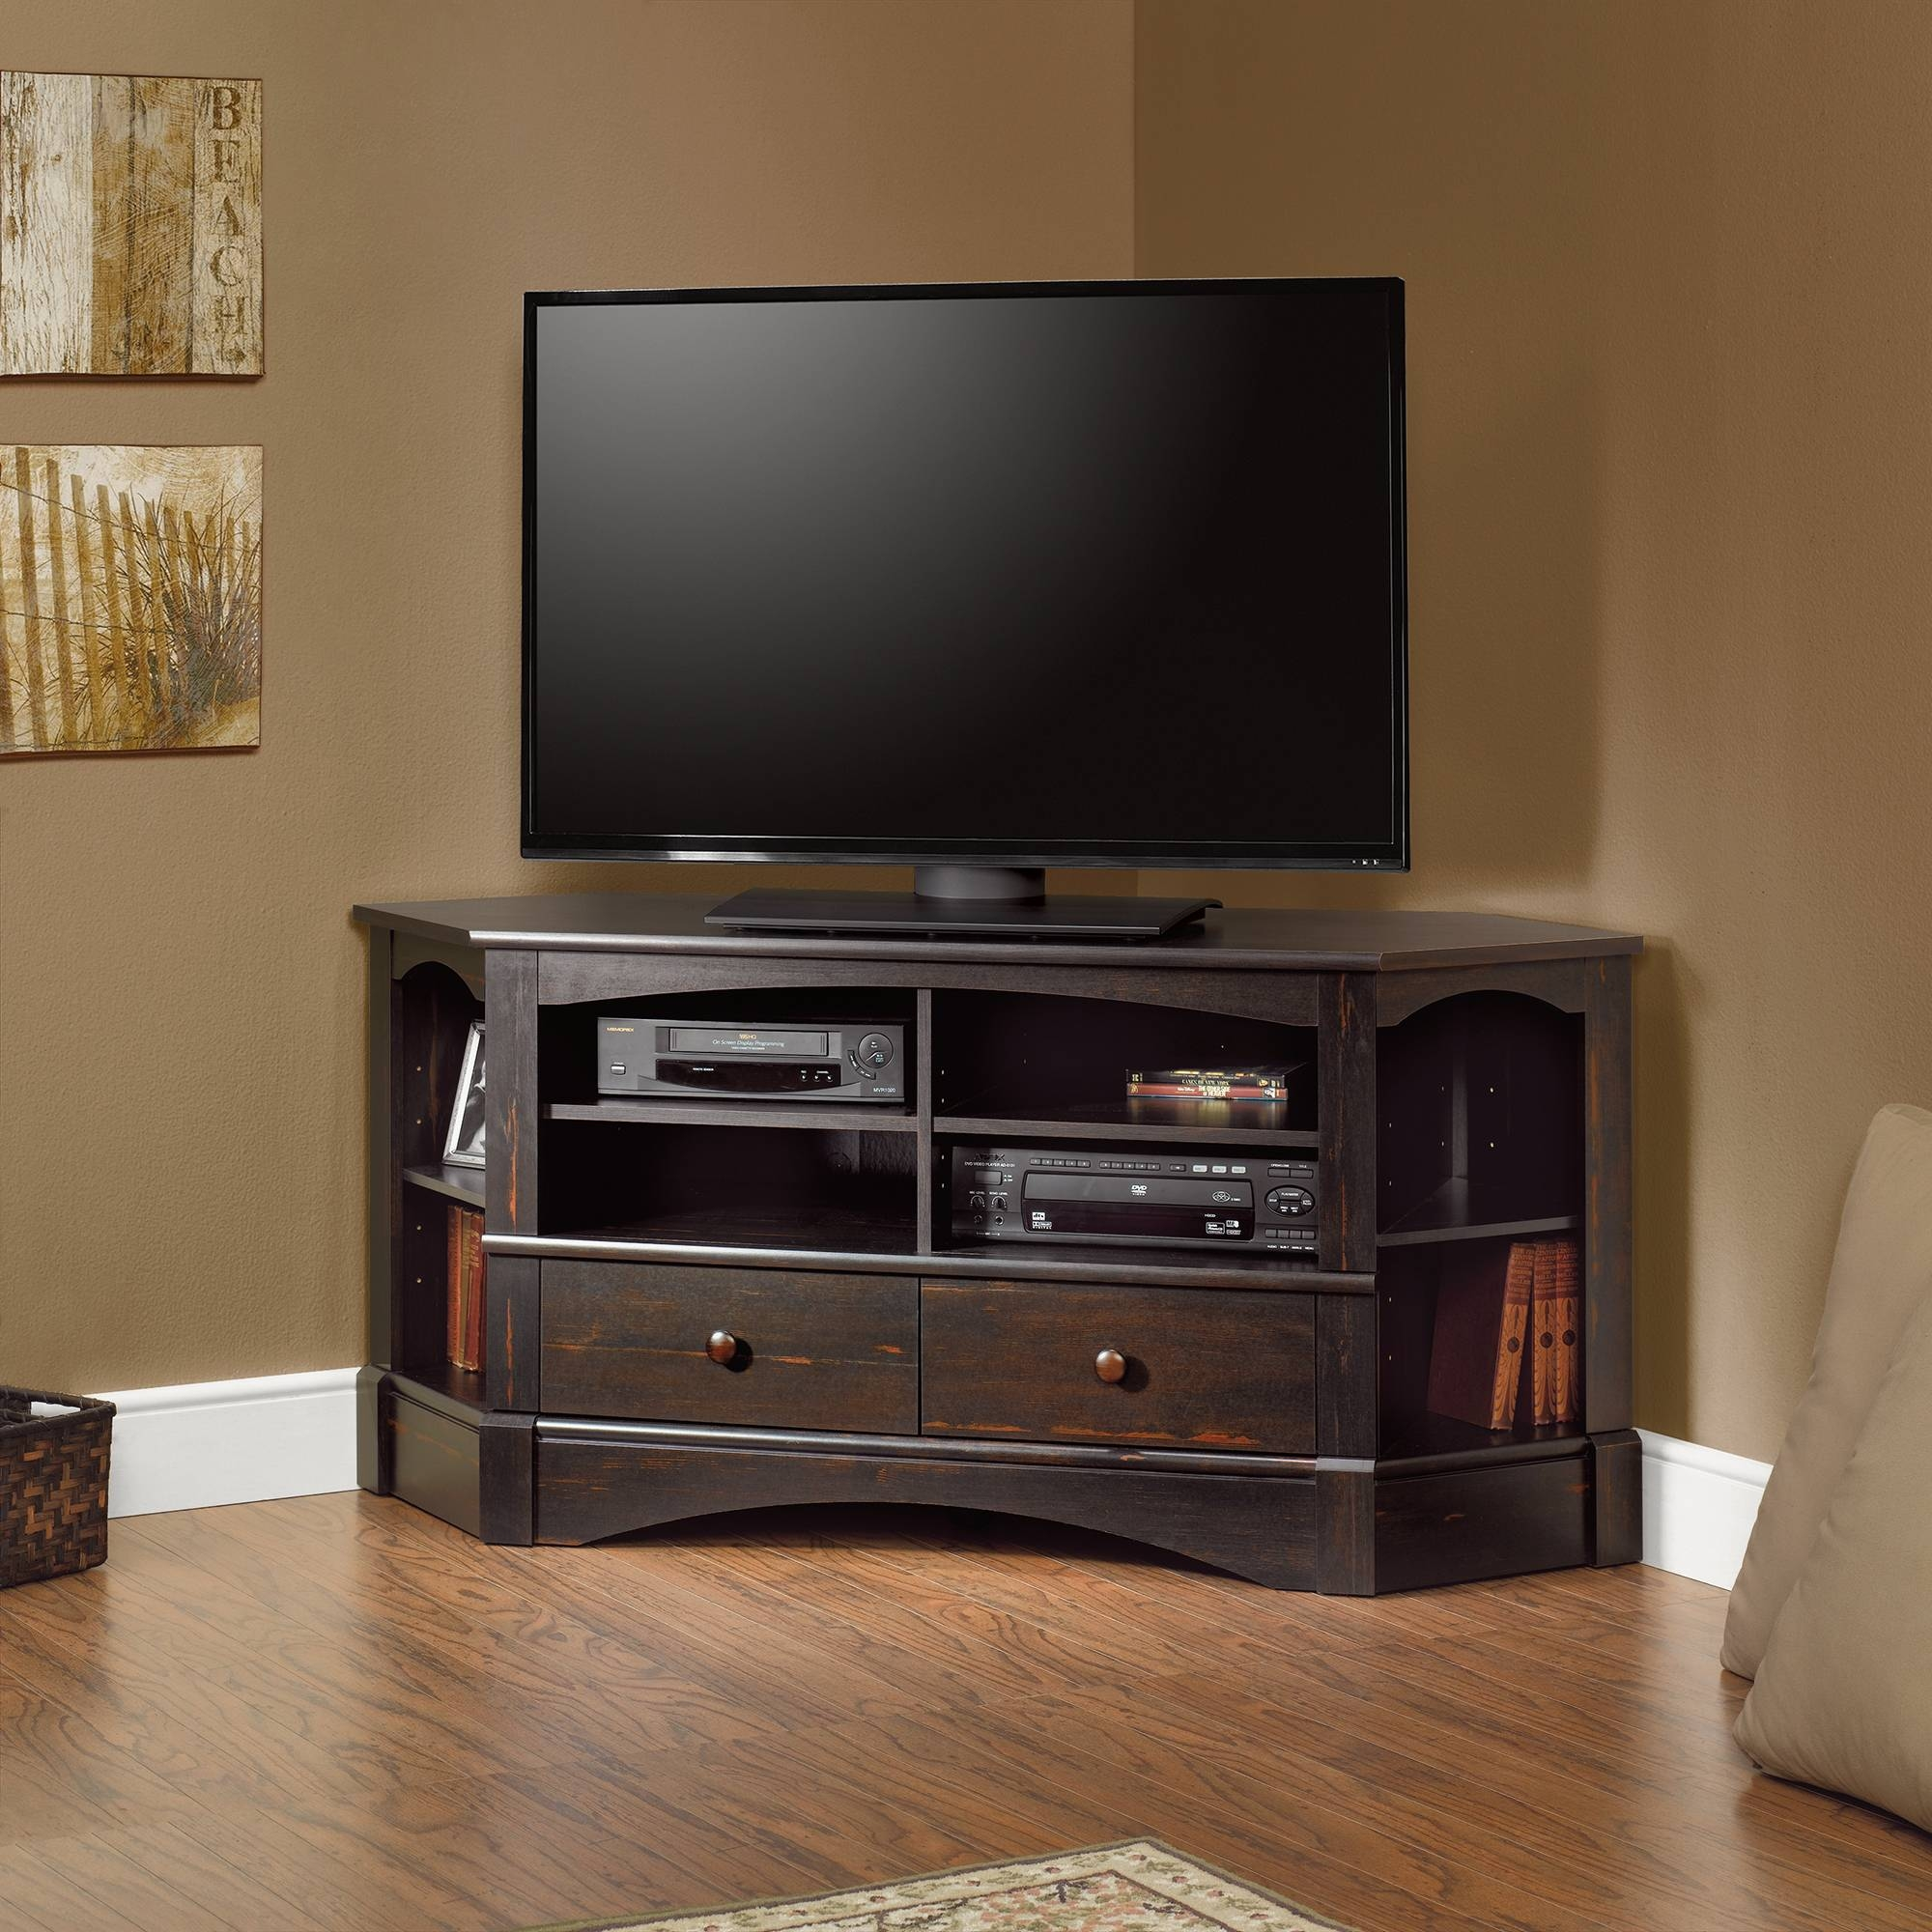 Fancy Matte Varnished Dark Oak Wood Tall Corner Tv Stand For with regard to Dark Tv Stands (Image 6 of 15)